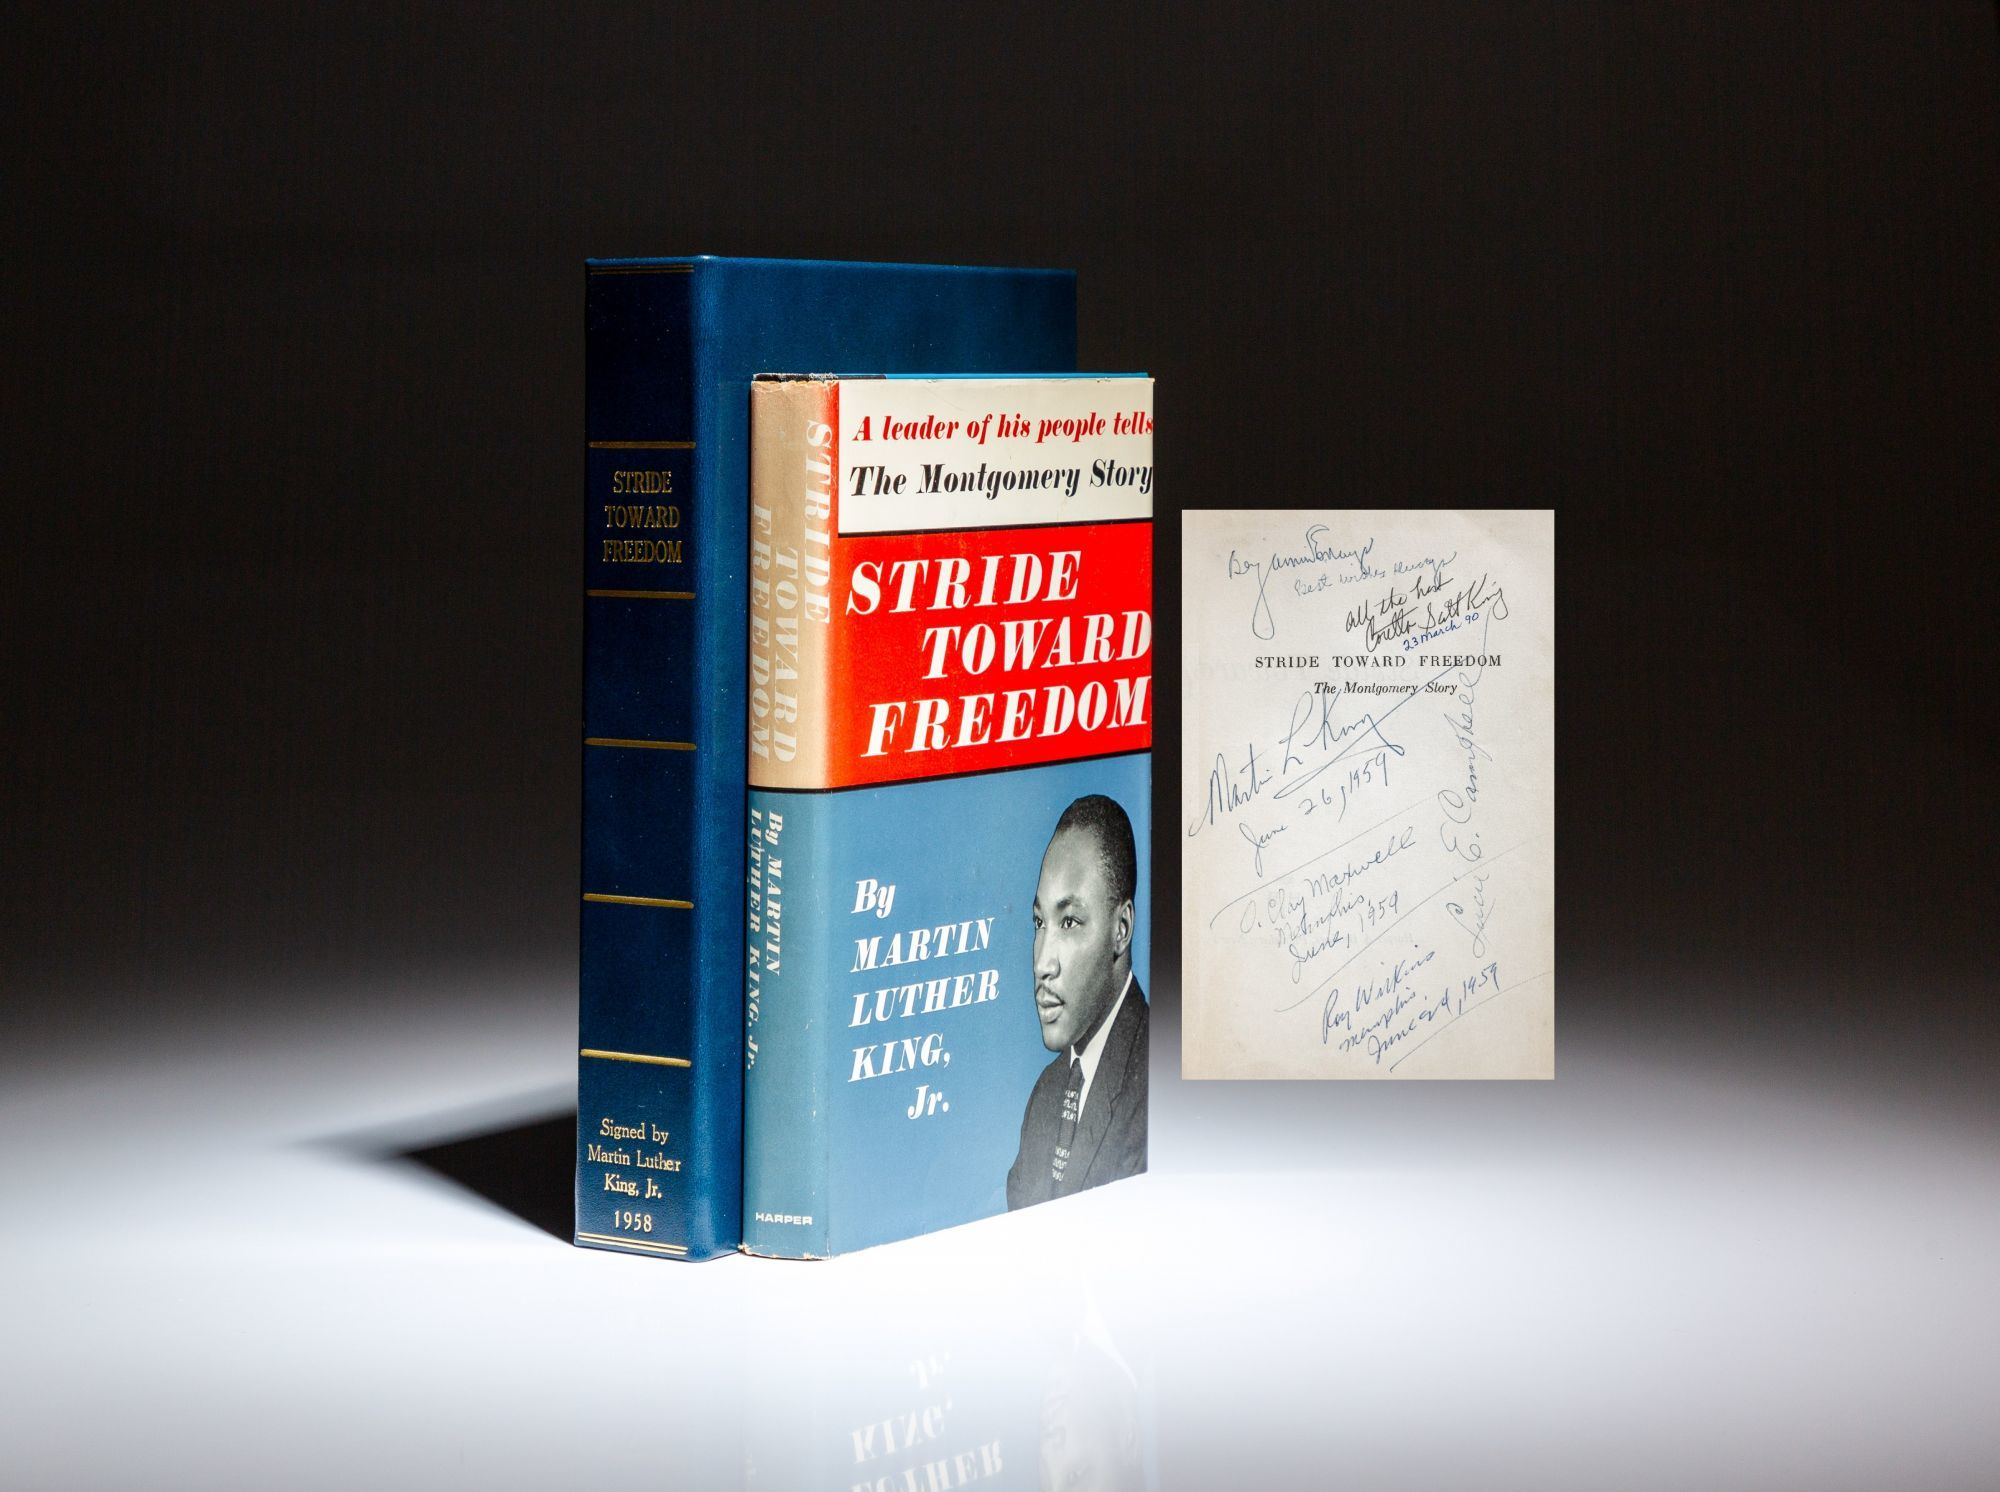 Stride Towards Freedom, Martin Luther King, Jr.